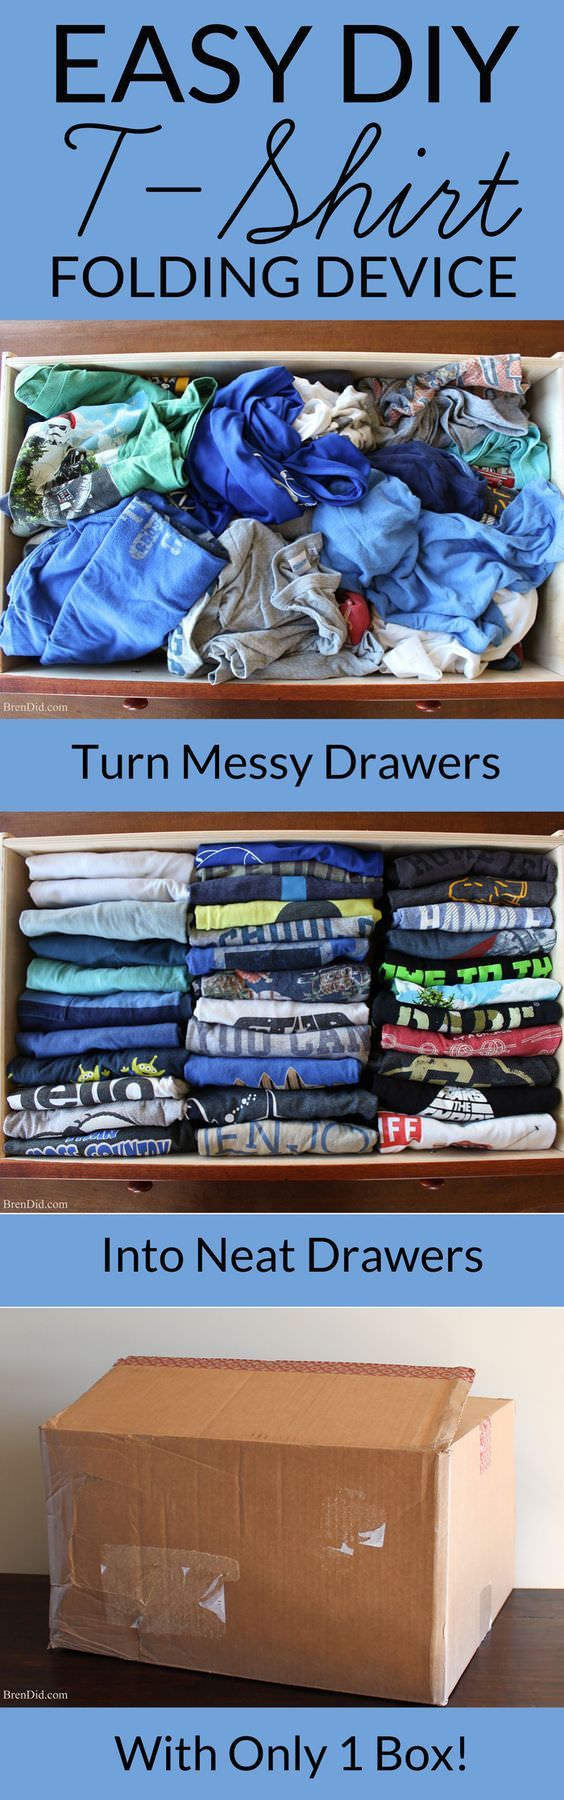 Make an Easy DIY T-Shirt Folding Device from a Cardboard Box